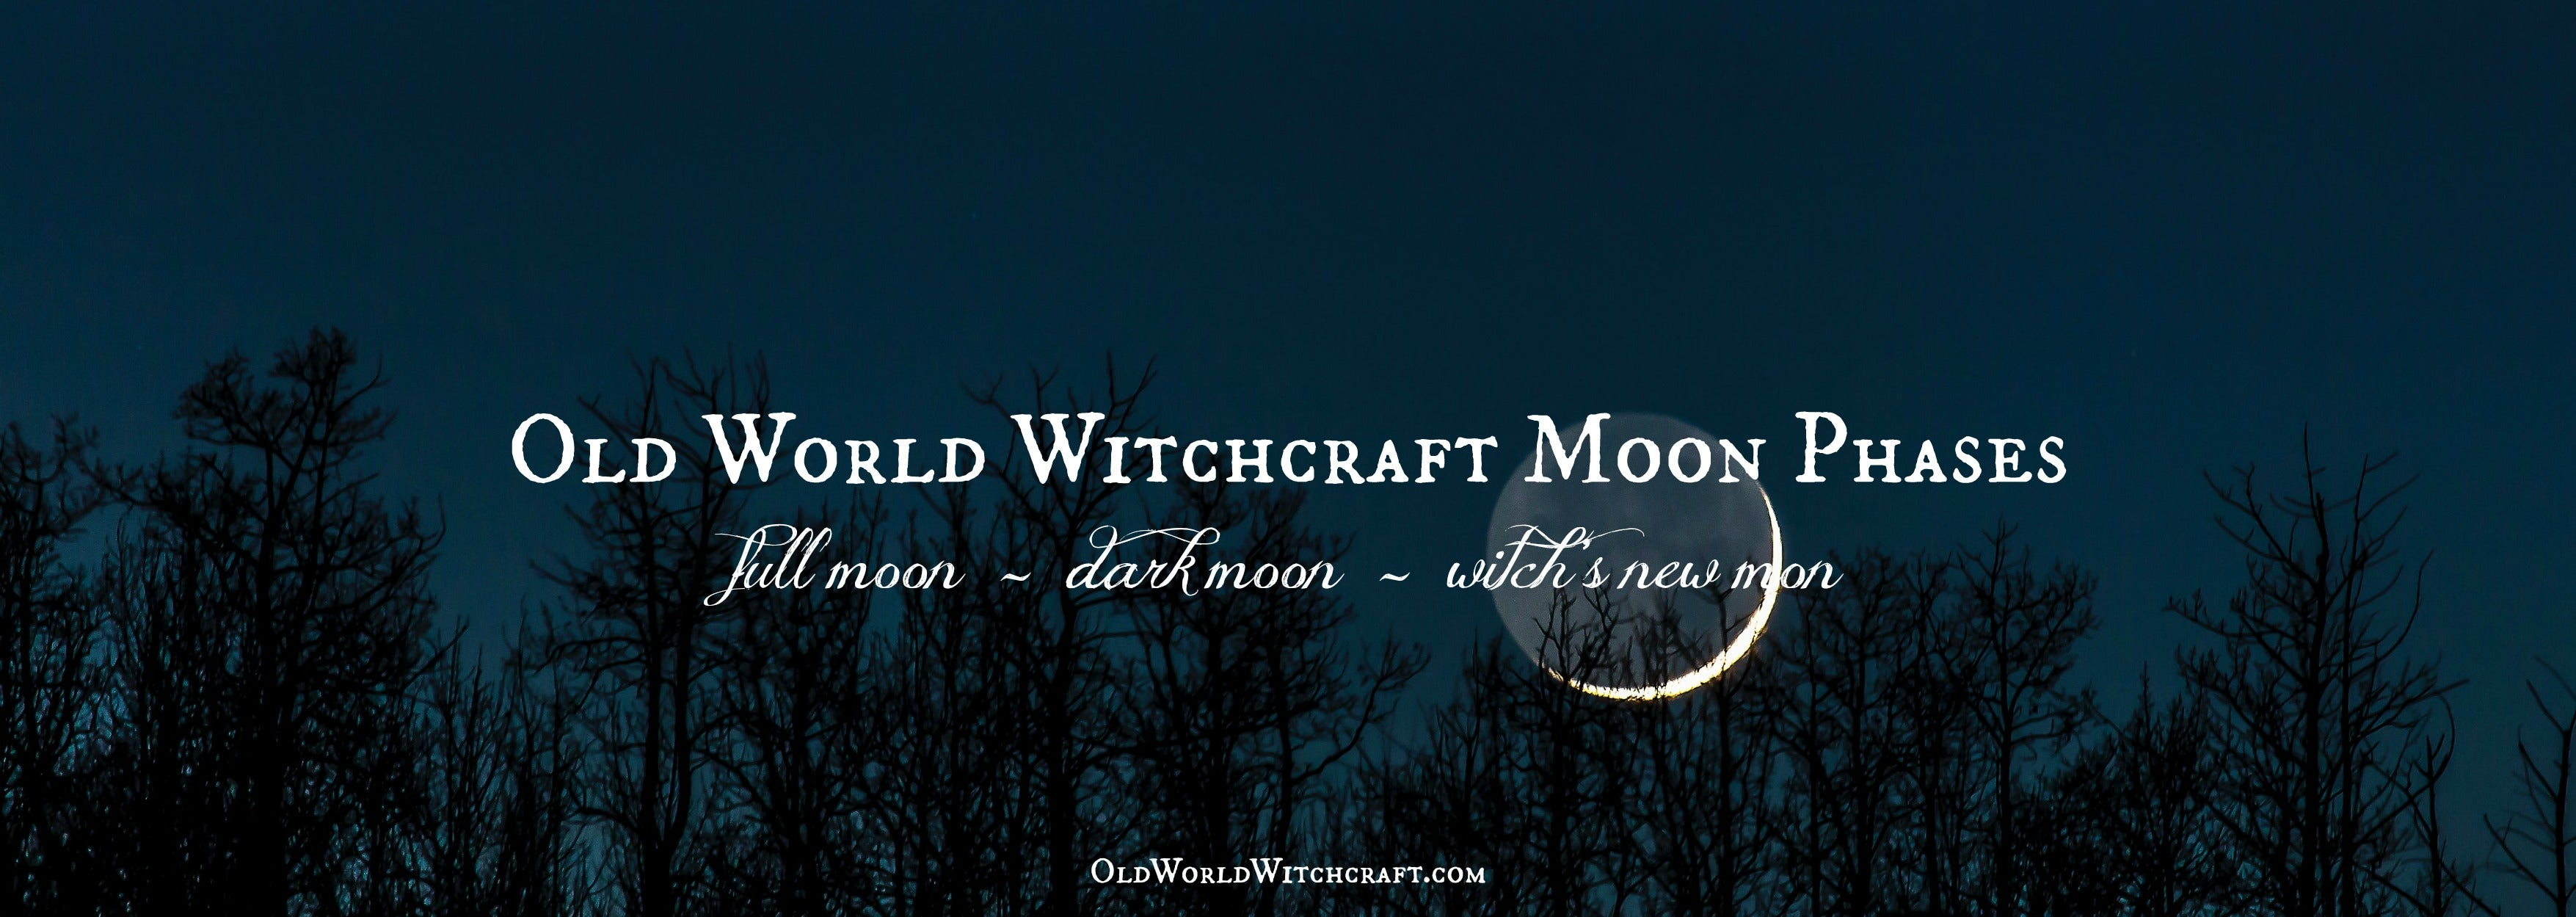 OId World Witchcraft moon phases